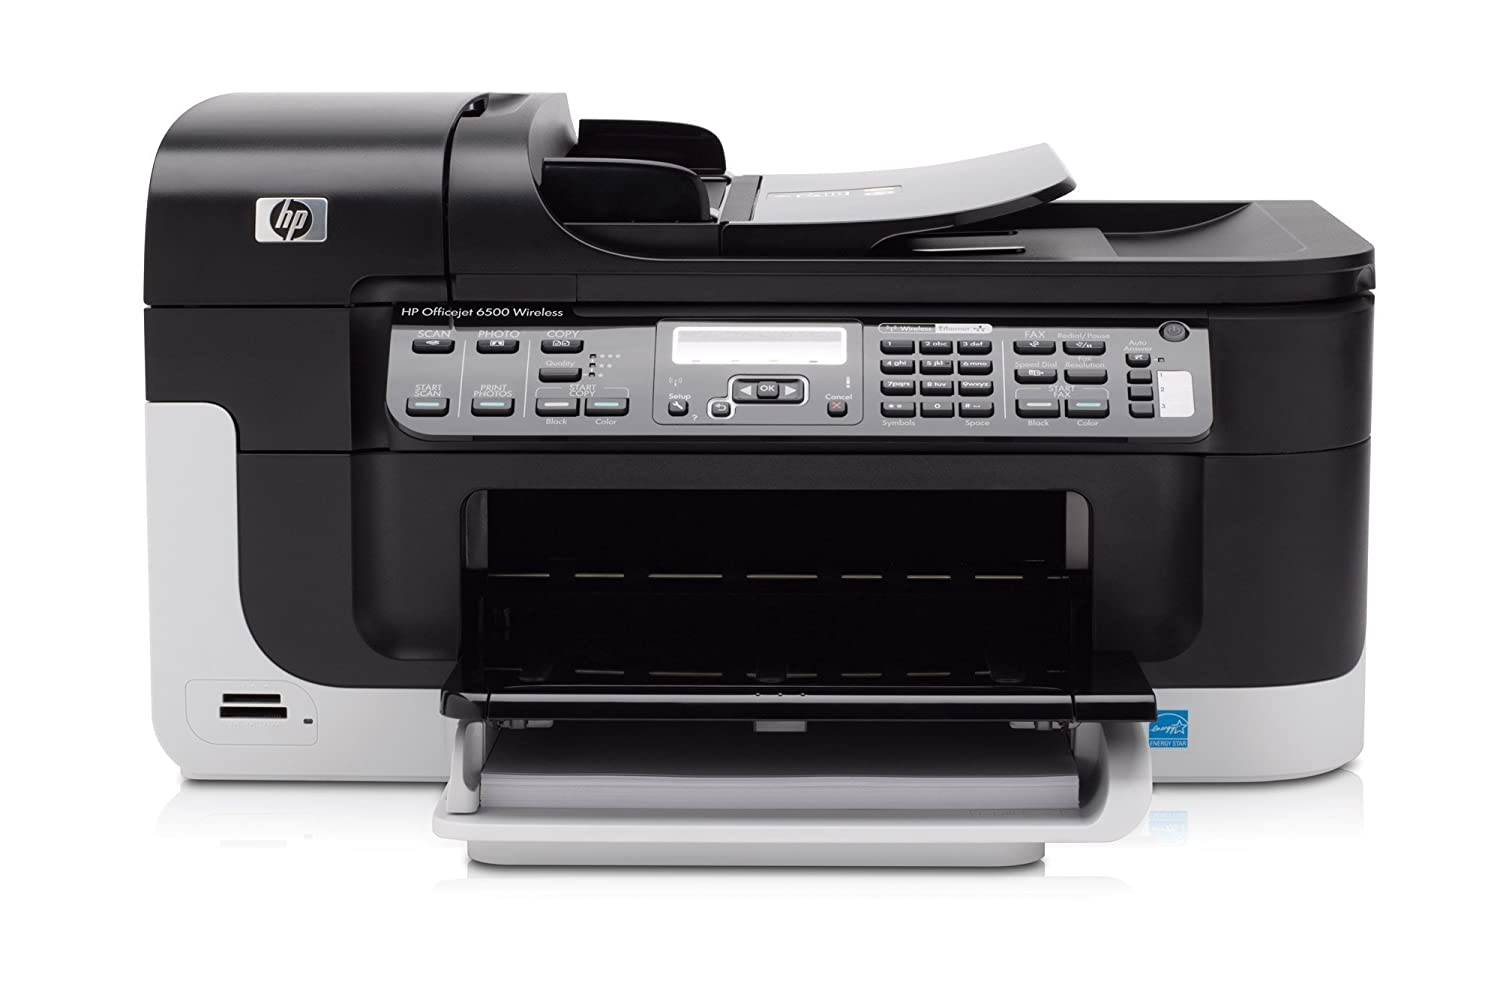 HP Officejet 6500 Wireless Multifunktionsgerät